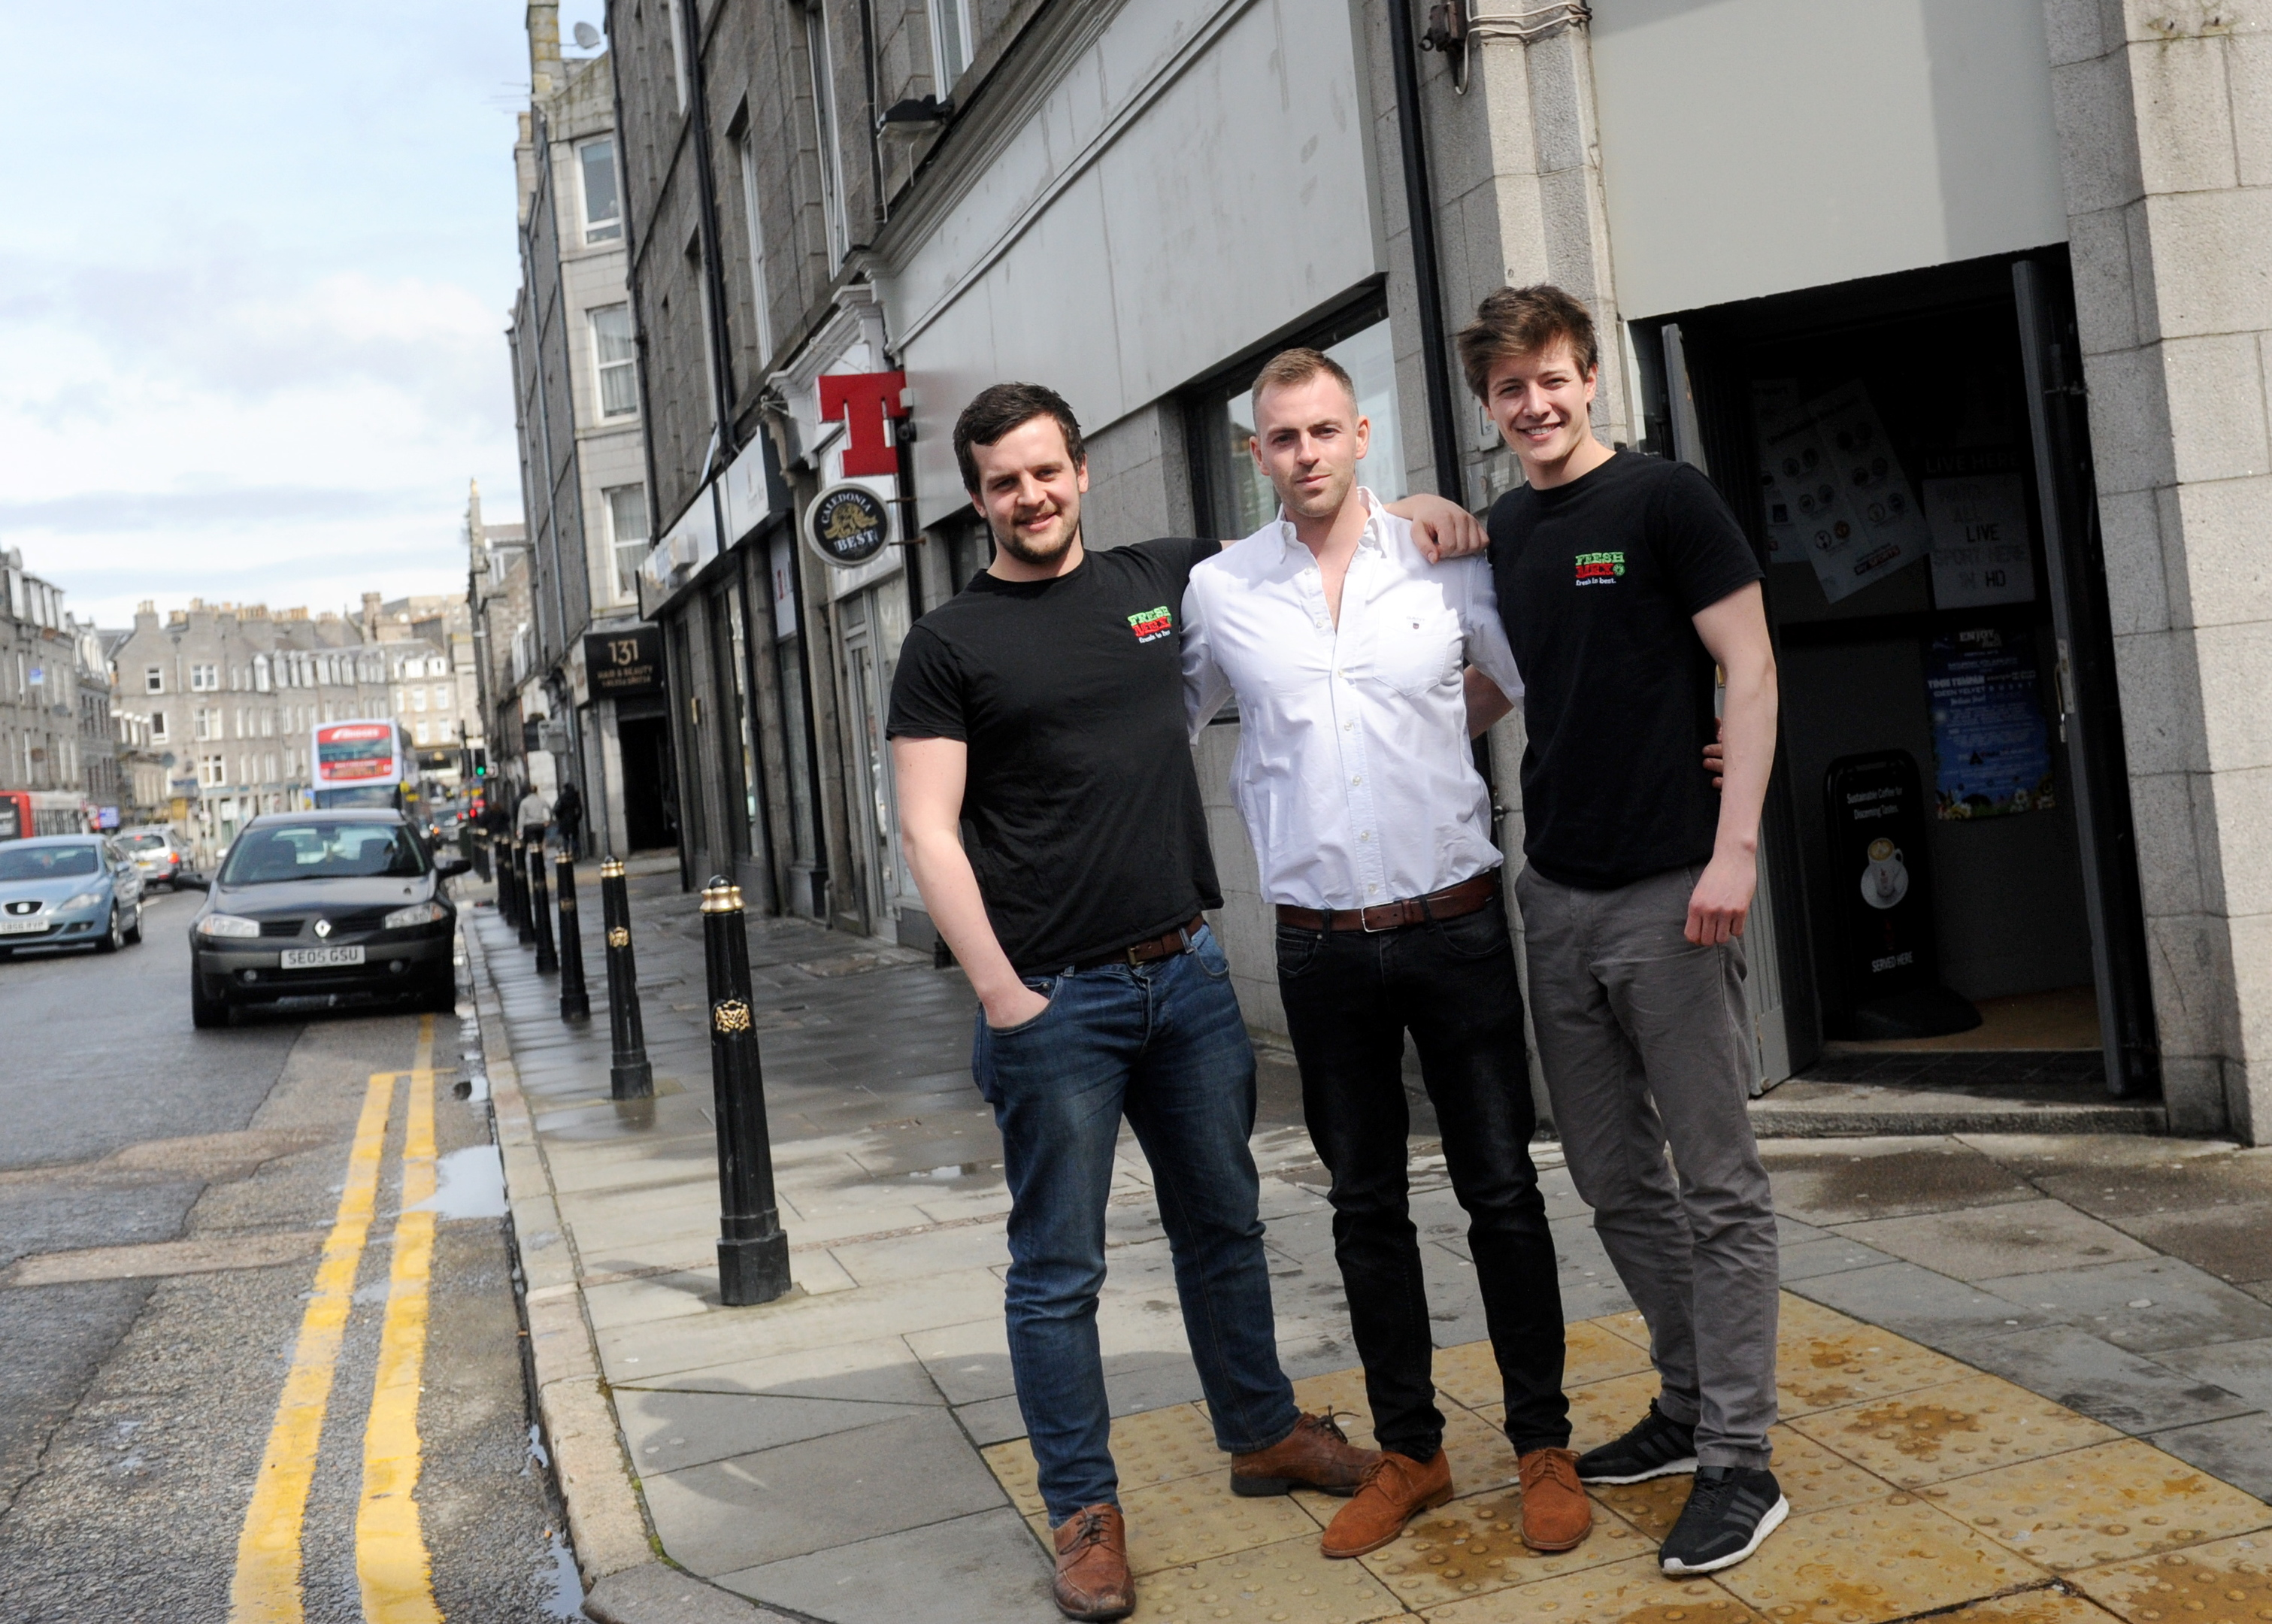 new venture:   Philip Adams, centre, who runs the Holburn Street  bar, with Calum Wright, left,  and Robbie Moult  of FreshMex.